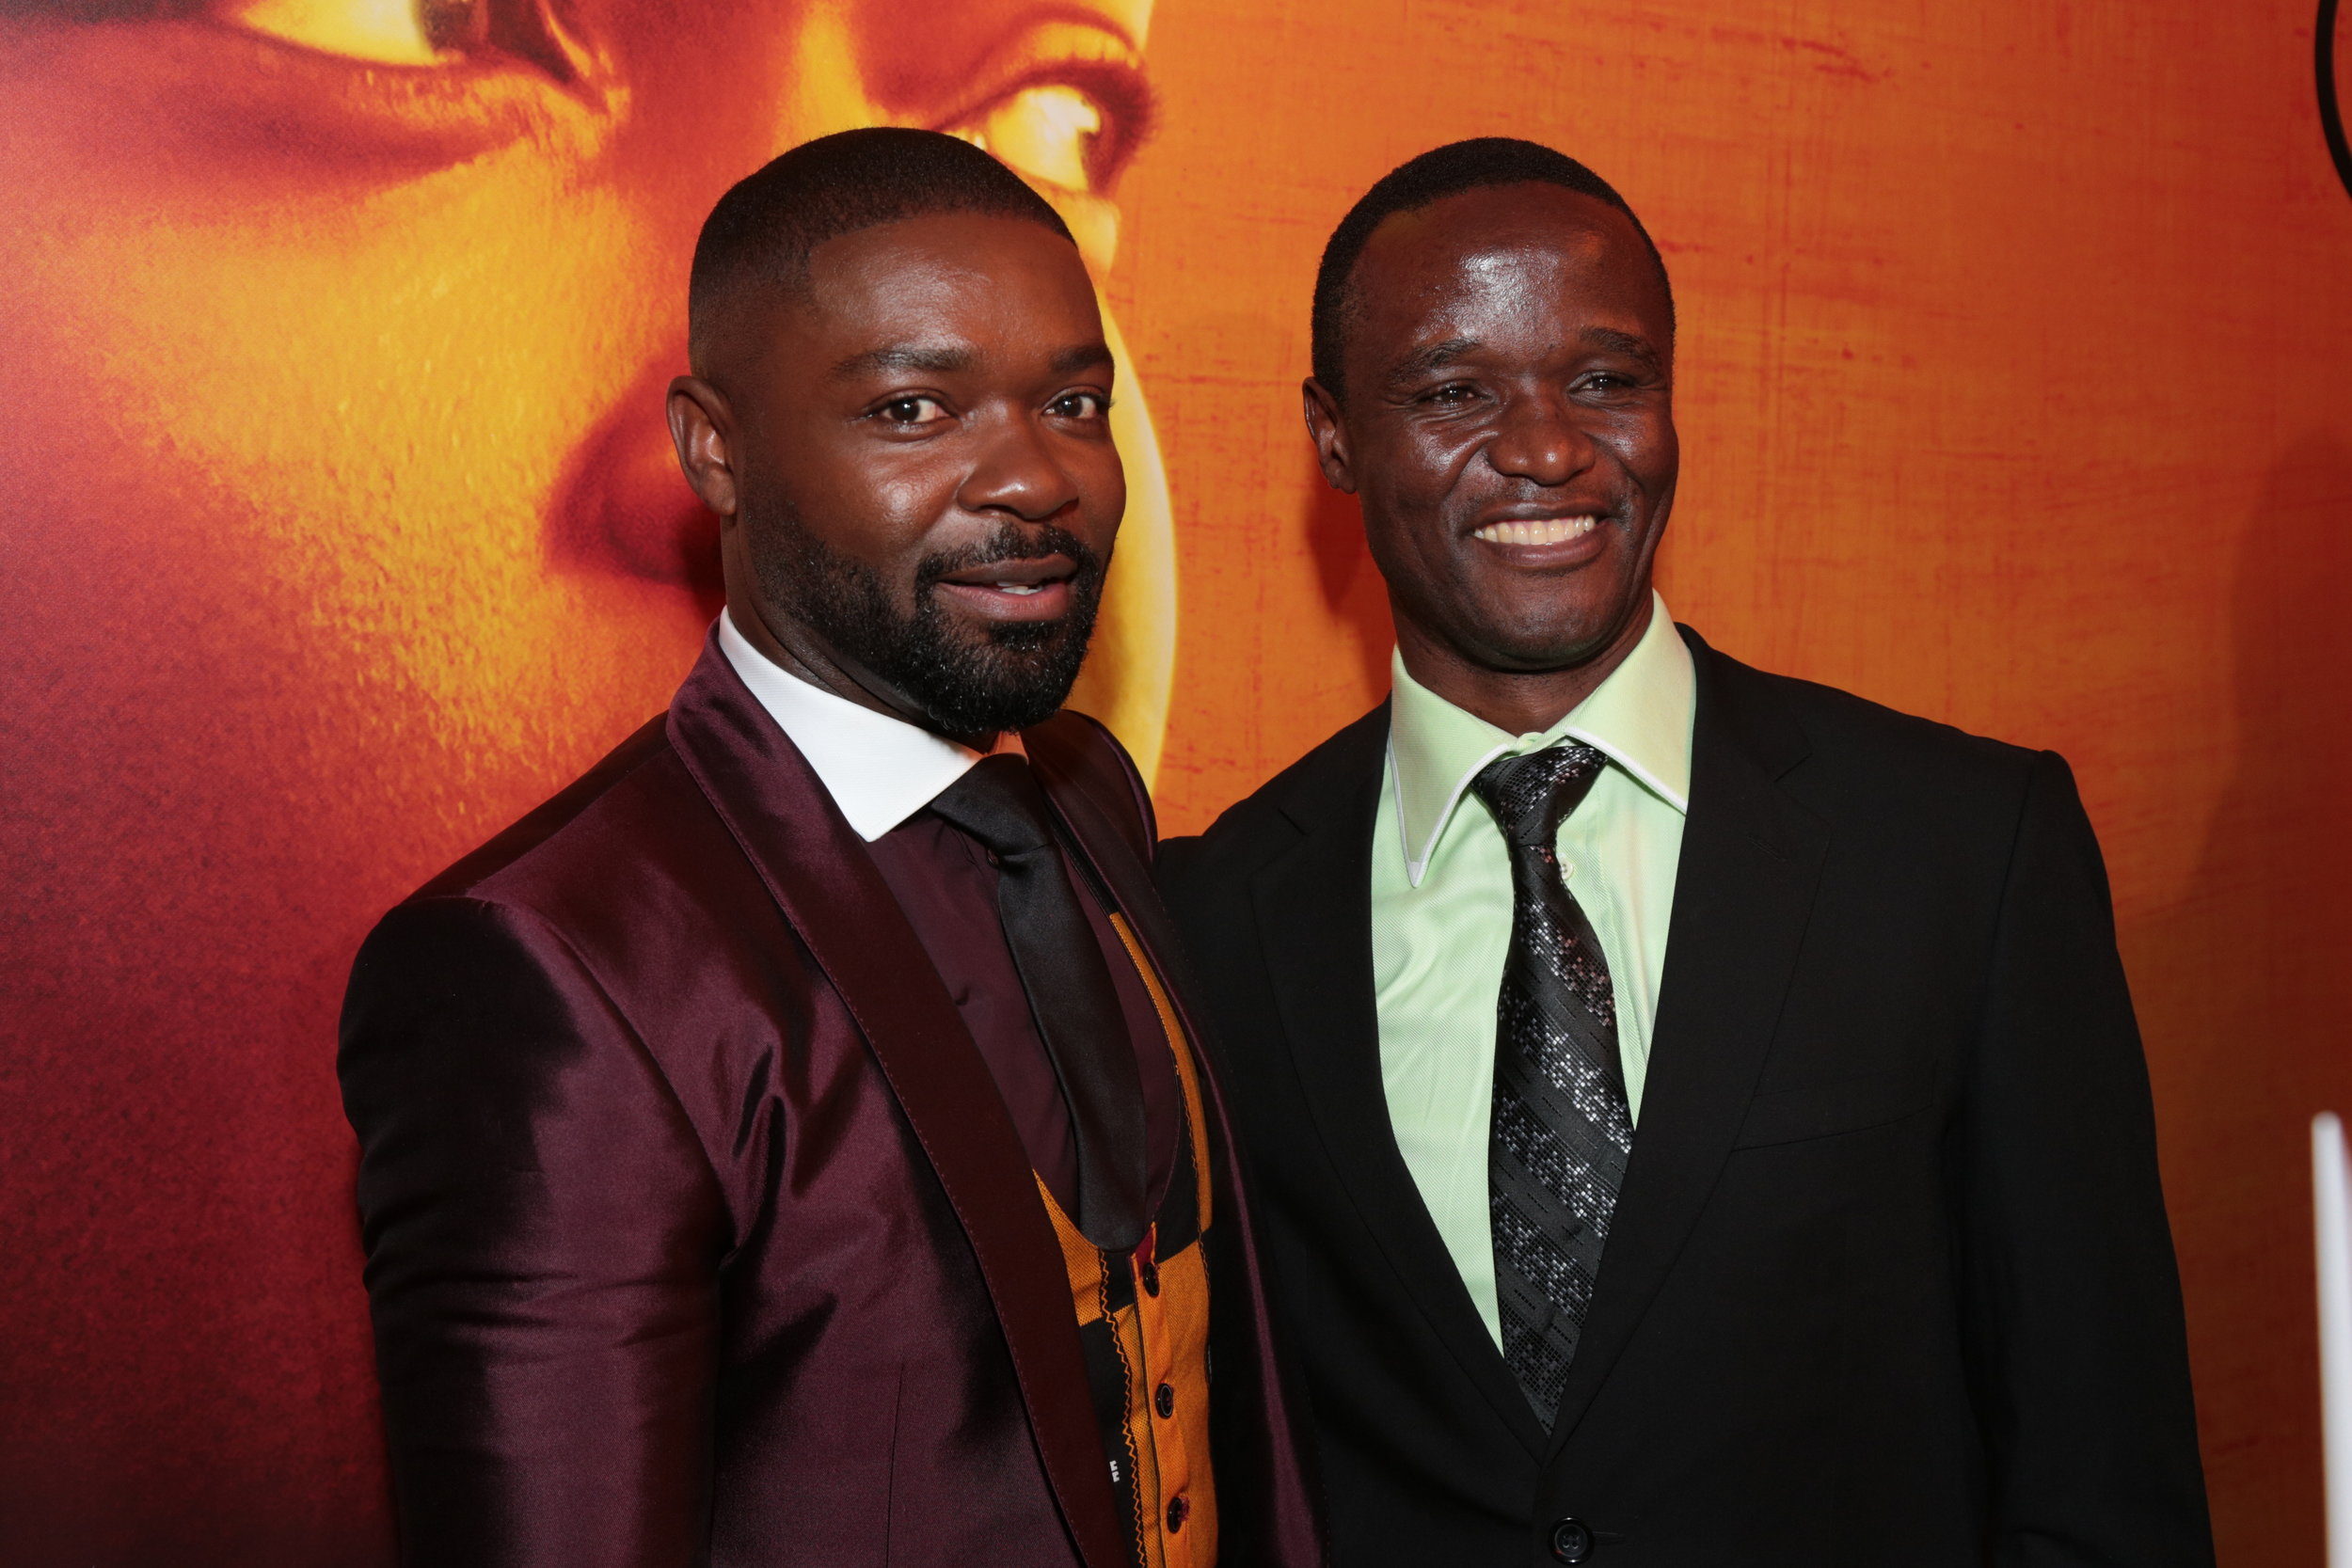 David Oyelowo and Robert Katende arrive at the U.S. premiere of Disney's Queen of Katwe at the El Capitan Theatre in Hollywood, CA on Tuesday, September 20, 2016. (Photo: Alex J. Berliner/ABImages)